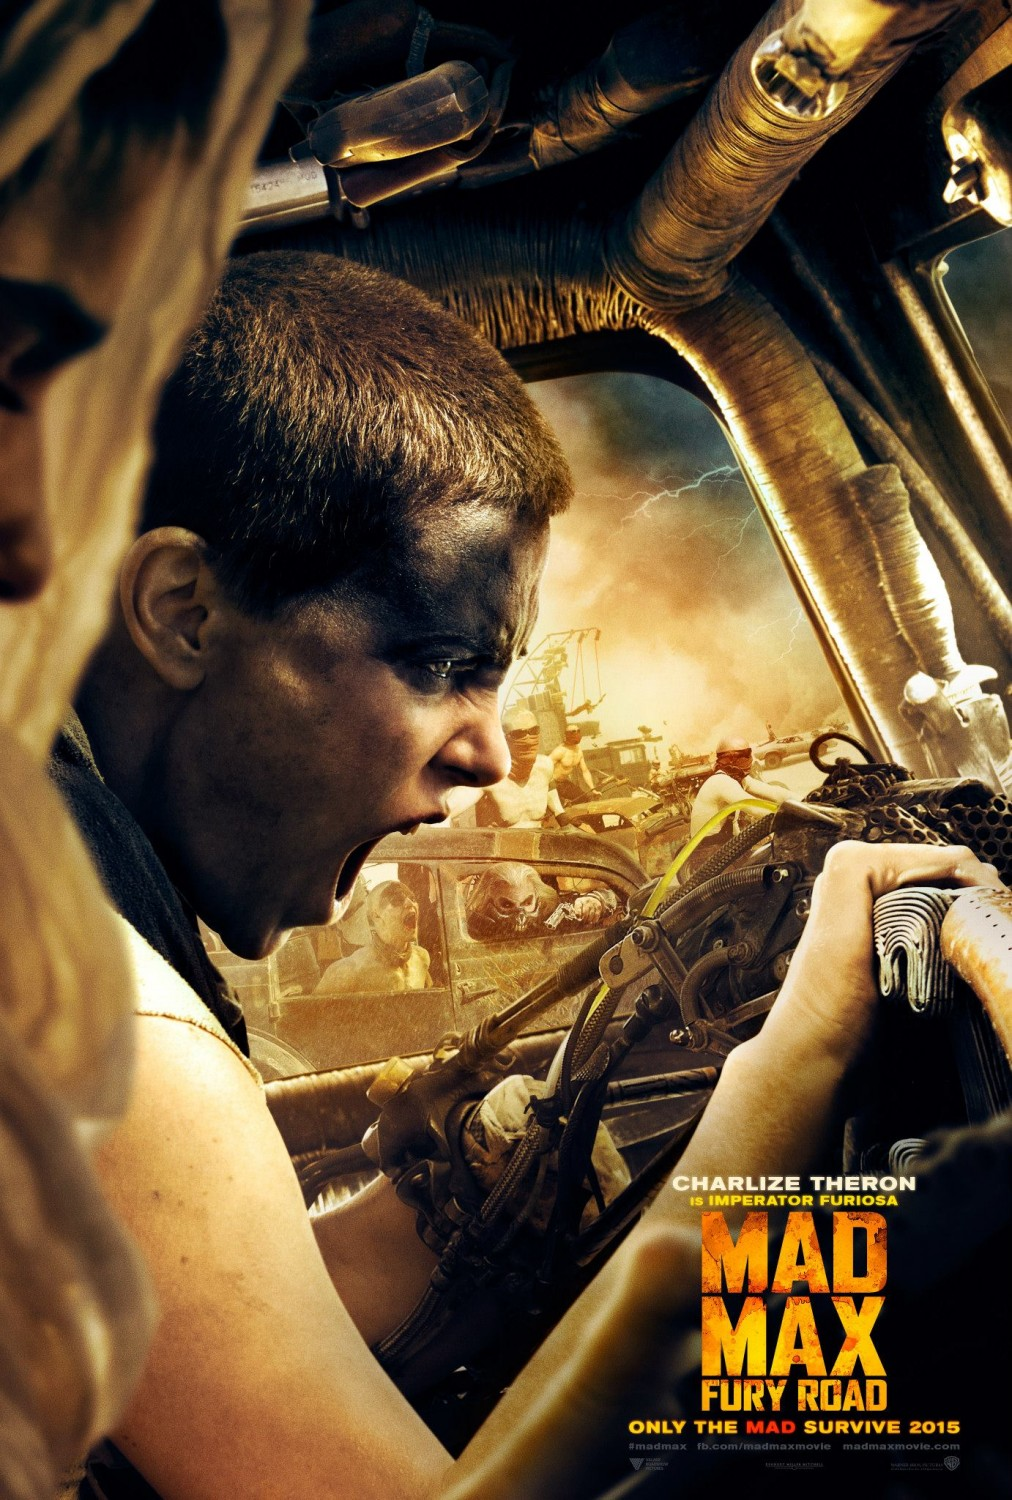 imperator furiosa the mad max wiki fandom powered by wikia. Black Bedroom Furniture Sets. Home Design Ideas